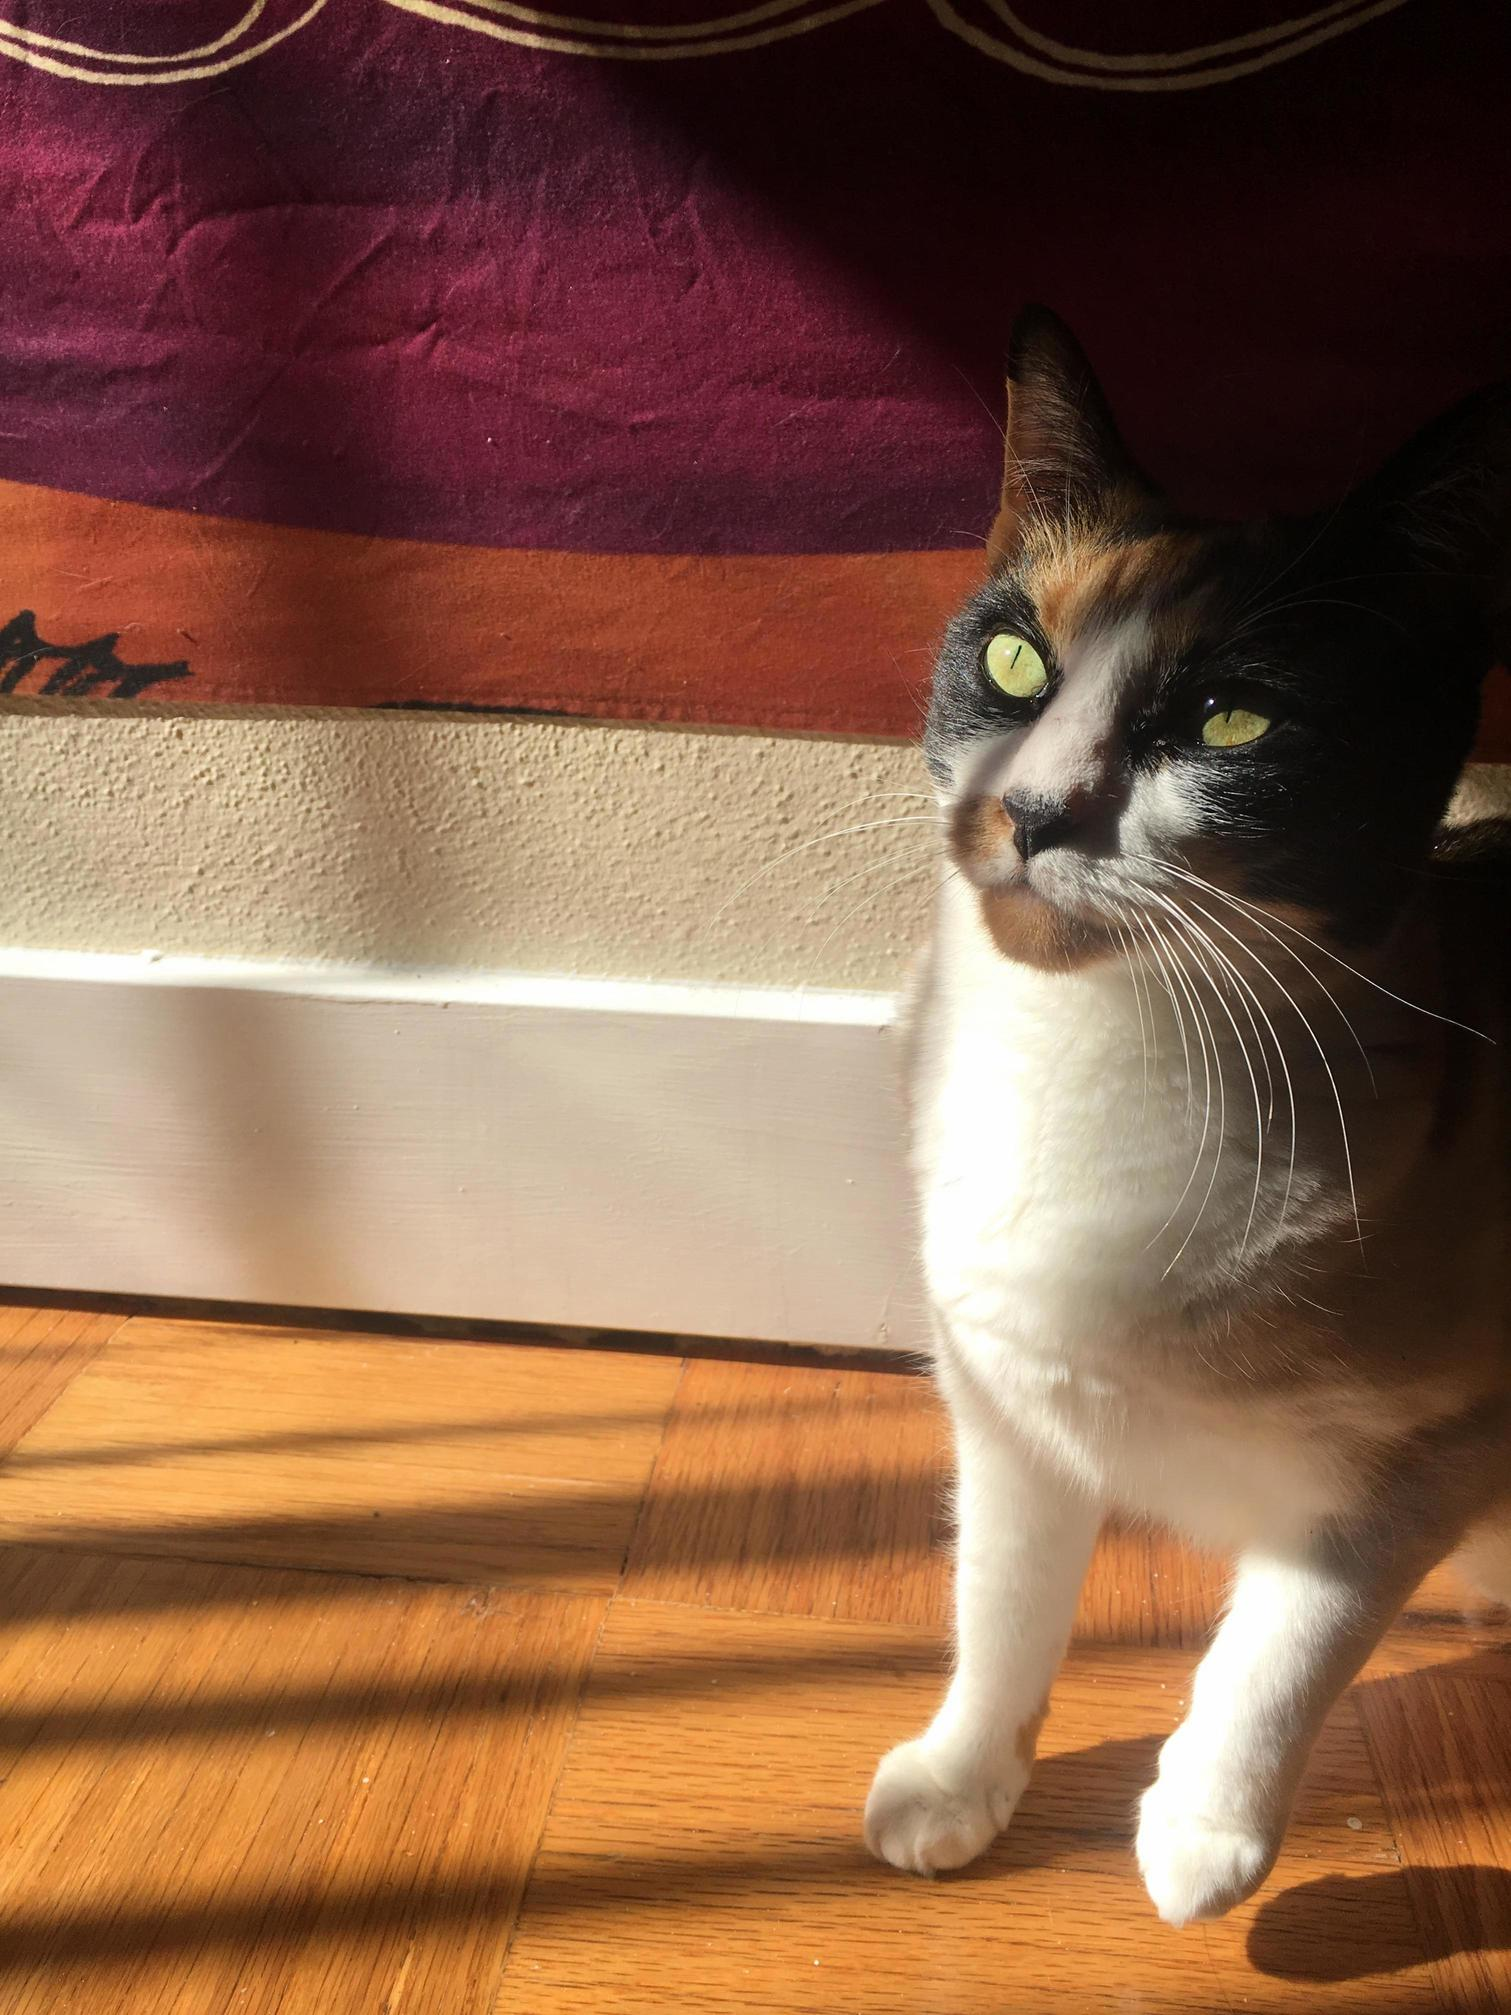 My sister took this awesome pic of our calico, leila!